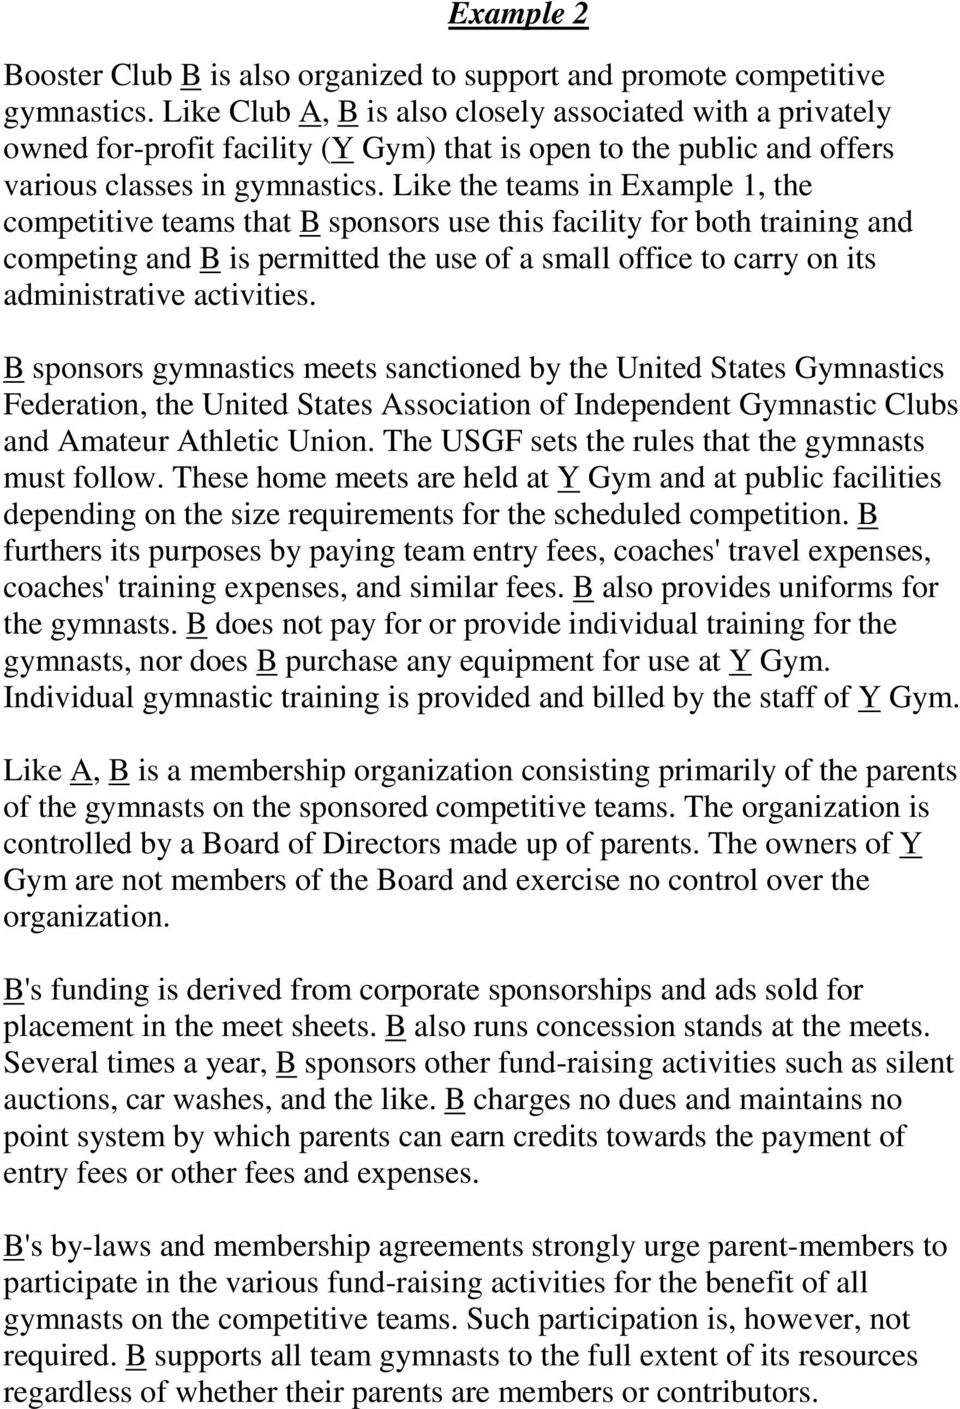 Like the teams in Example 1, the competitive teams that B sponsors use this facility for both training and competing and B is permitted the use of a small office to carry on its administrative